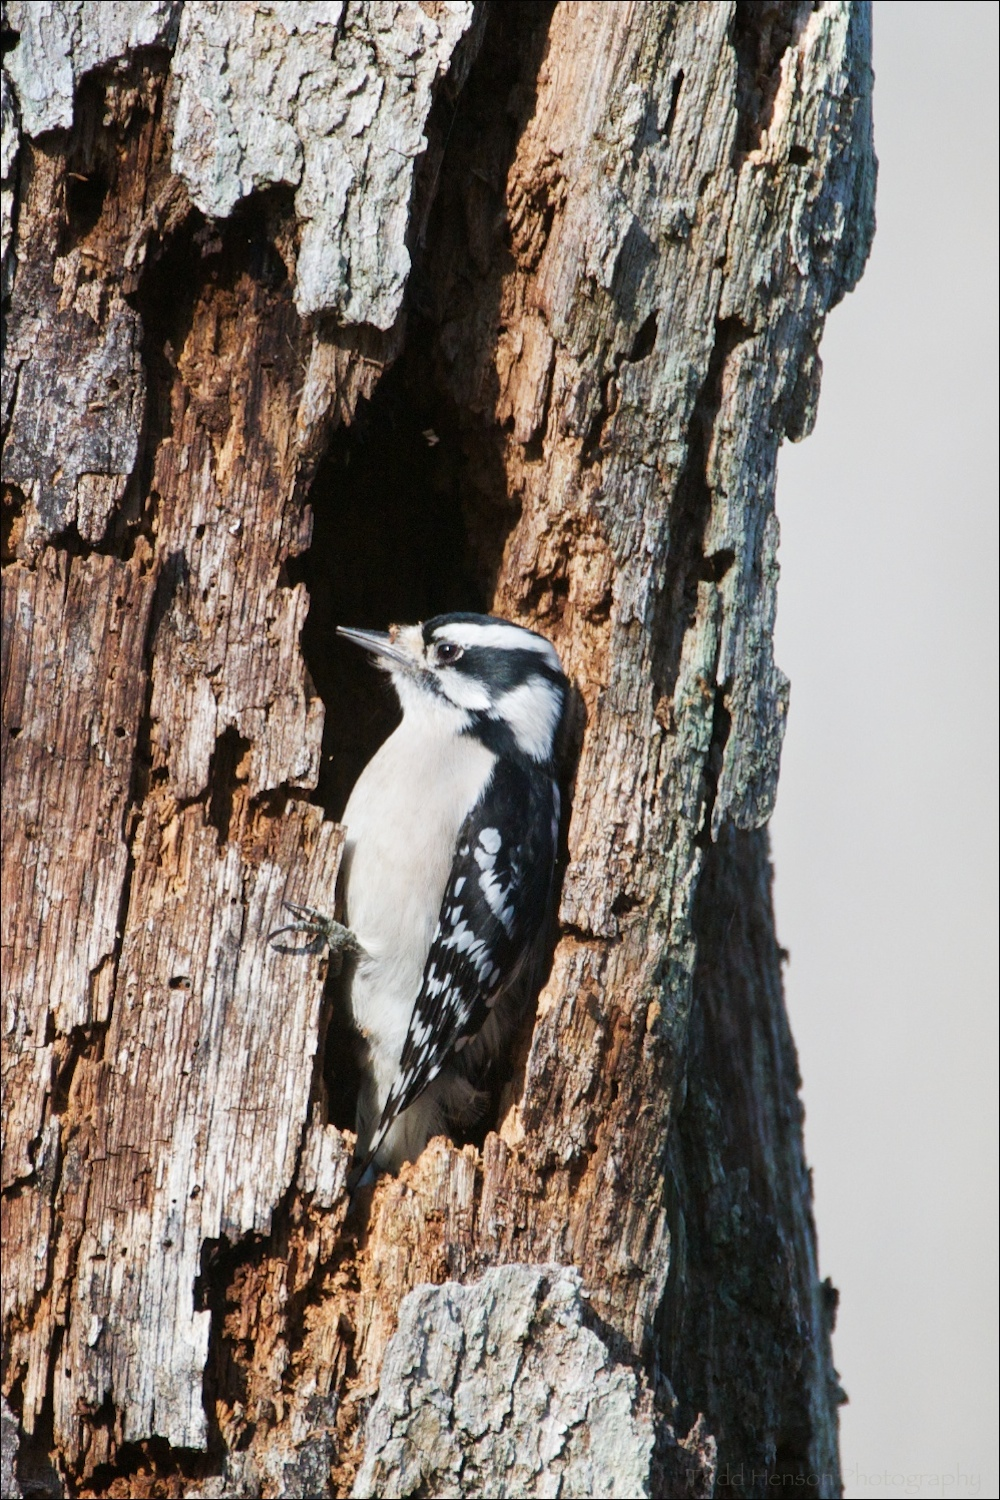 Female Downy Woodpecker in tree